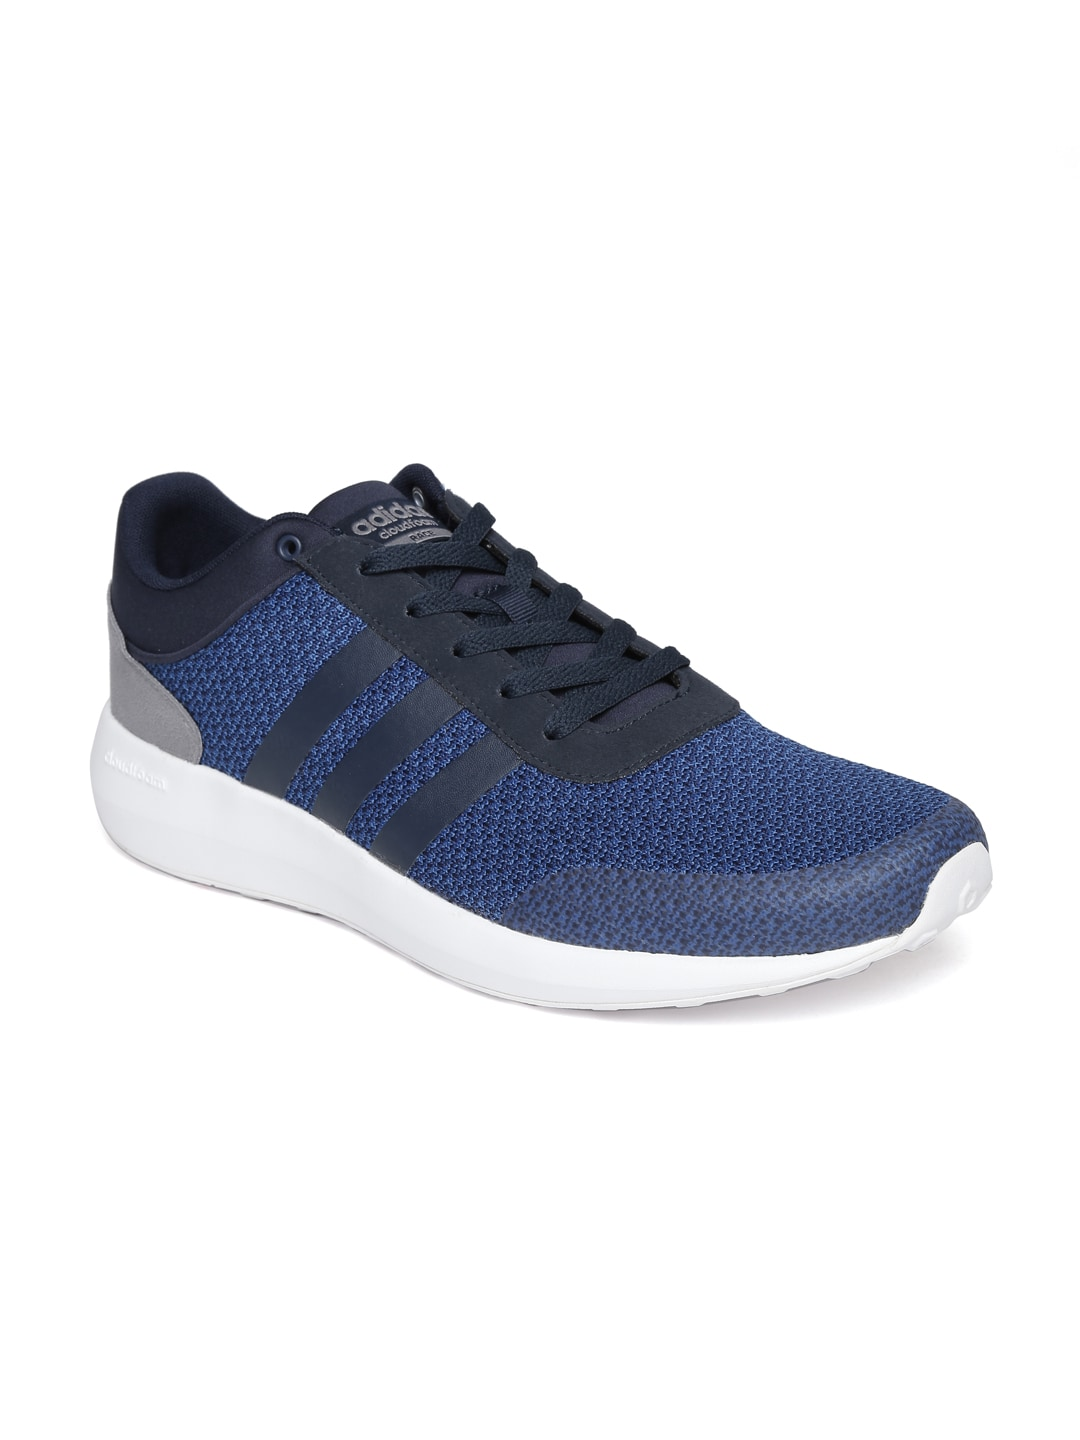 cc5241b6e341 Adidas Neo Shoes - Buy Adidas Neo Shoes online in India